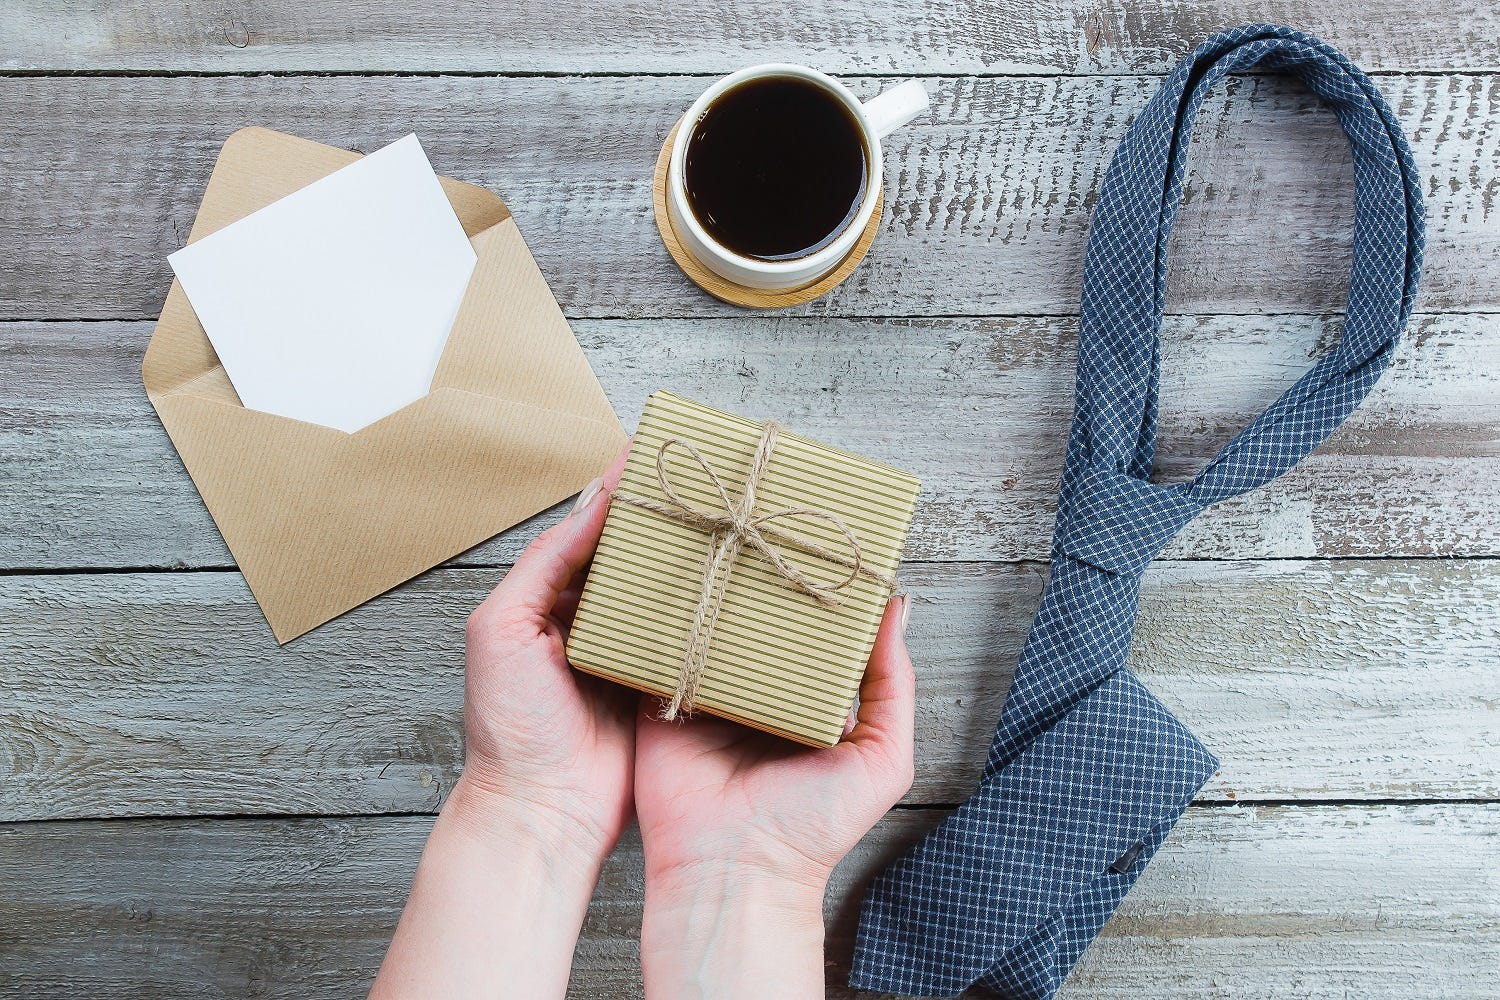 Birthday gift ideas for Husband – Make him feel special today!